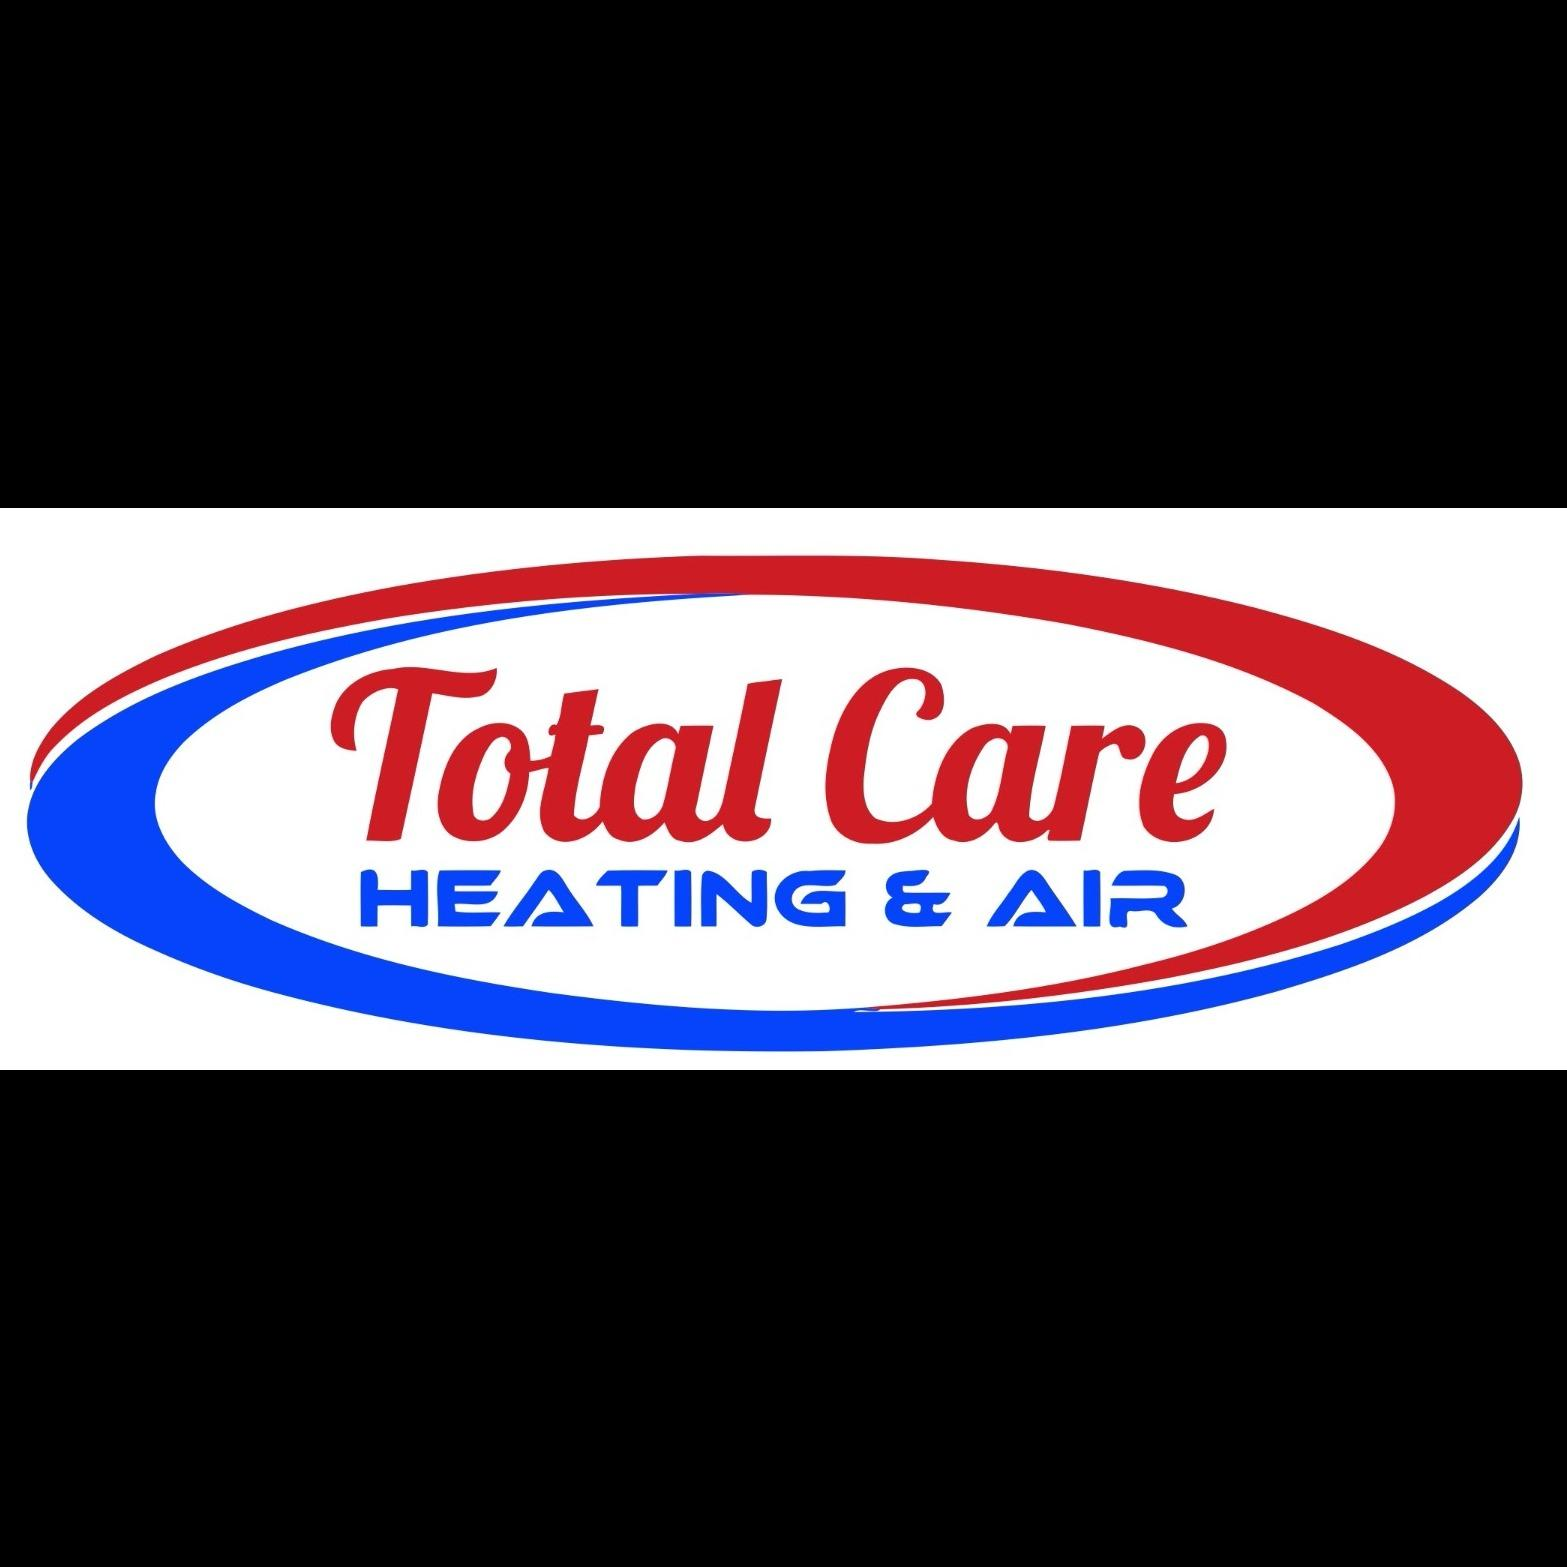 Total Care Heating & Air